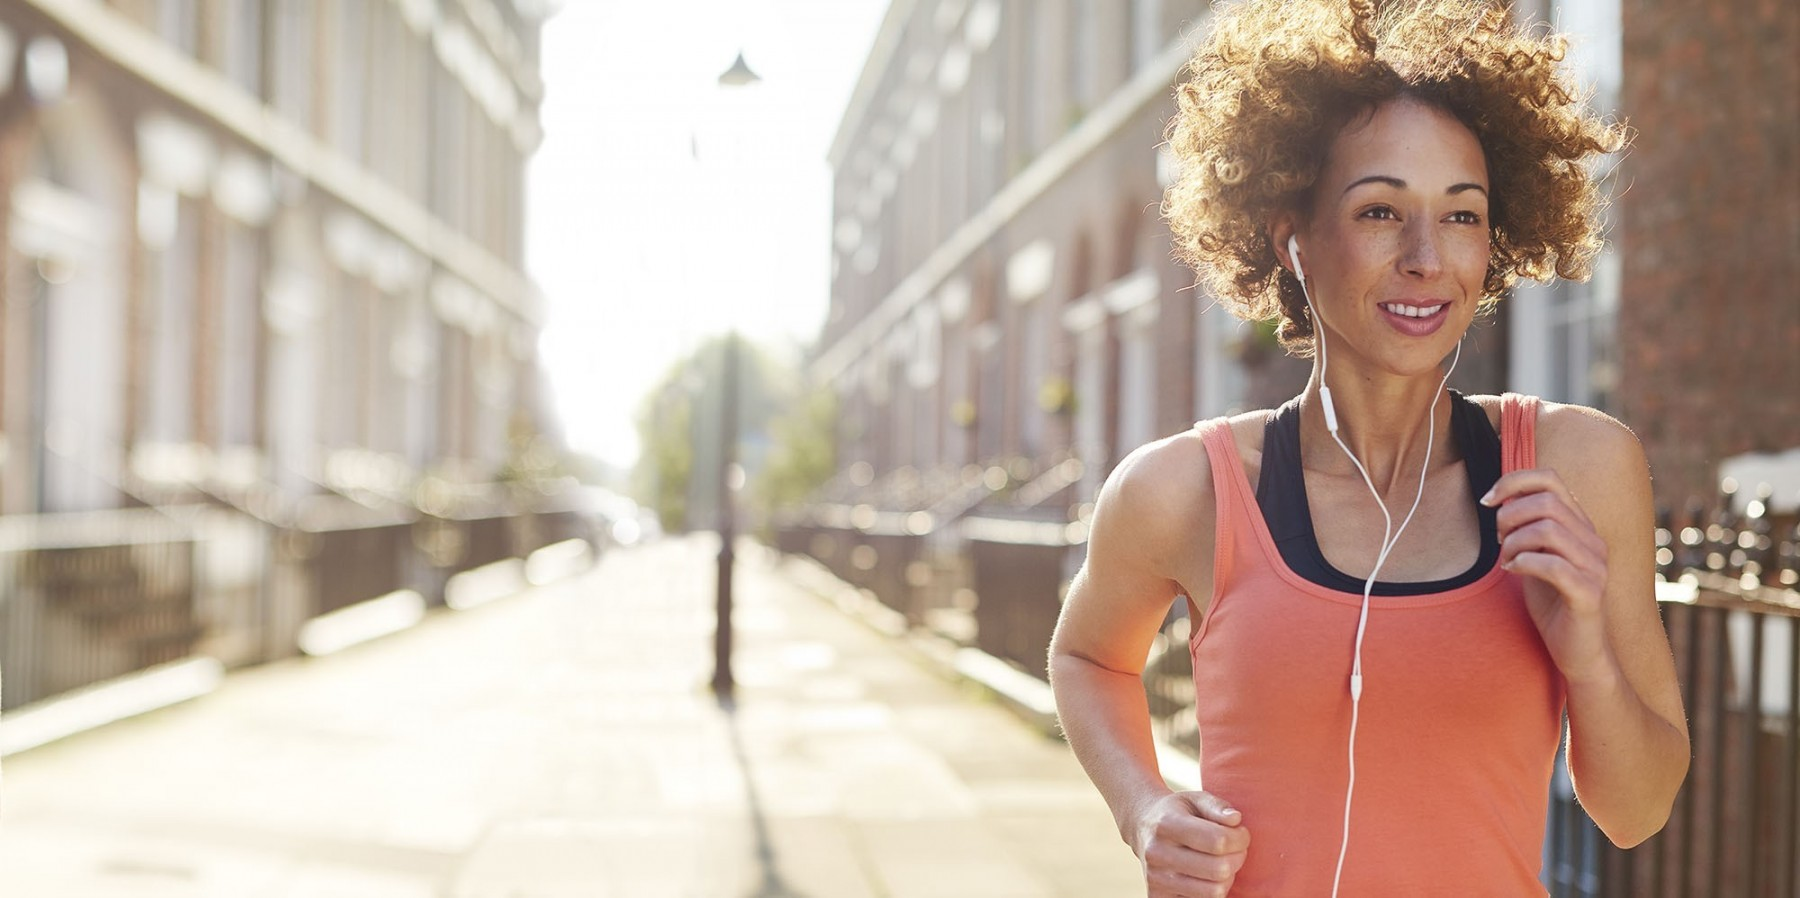 A woman jogging down a residential street listening to headphones